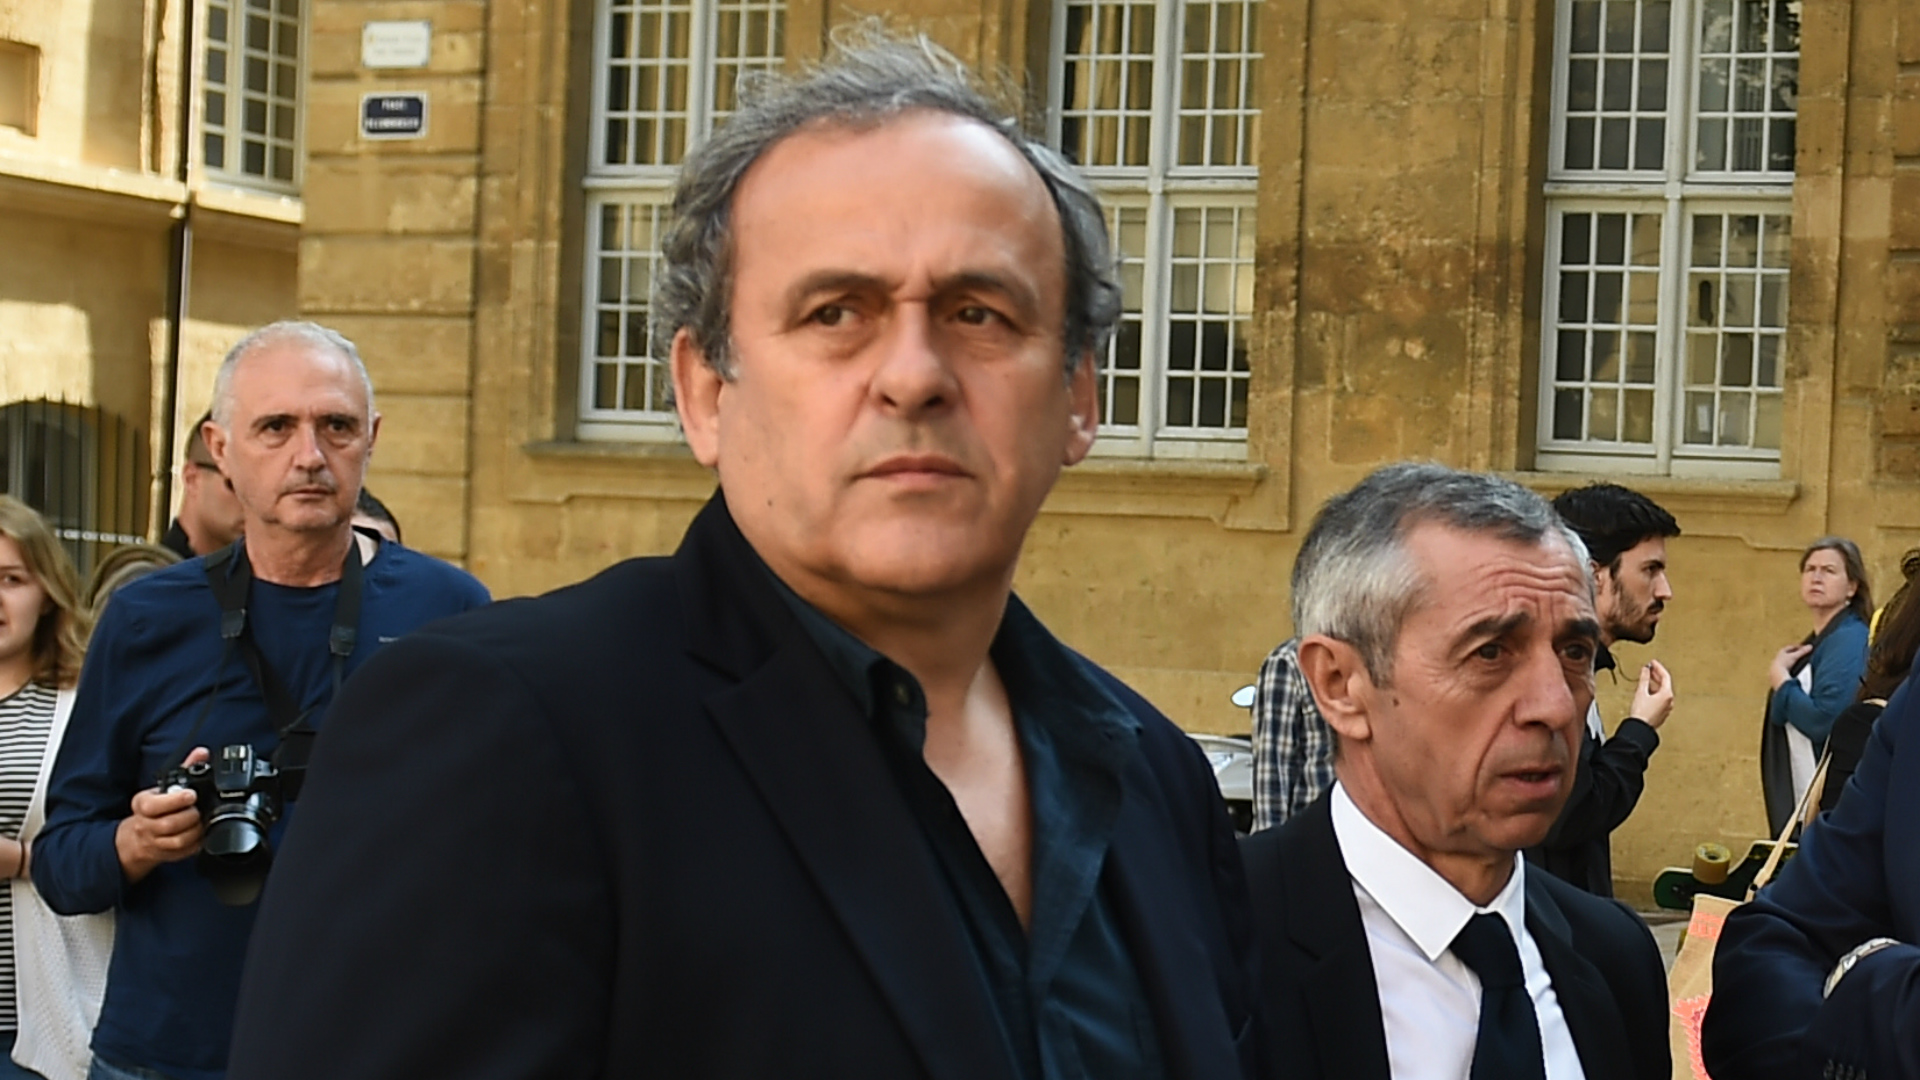 'Conspiracy' - Platini vows to return to football following 'suspension made by morons'